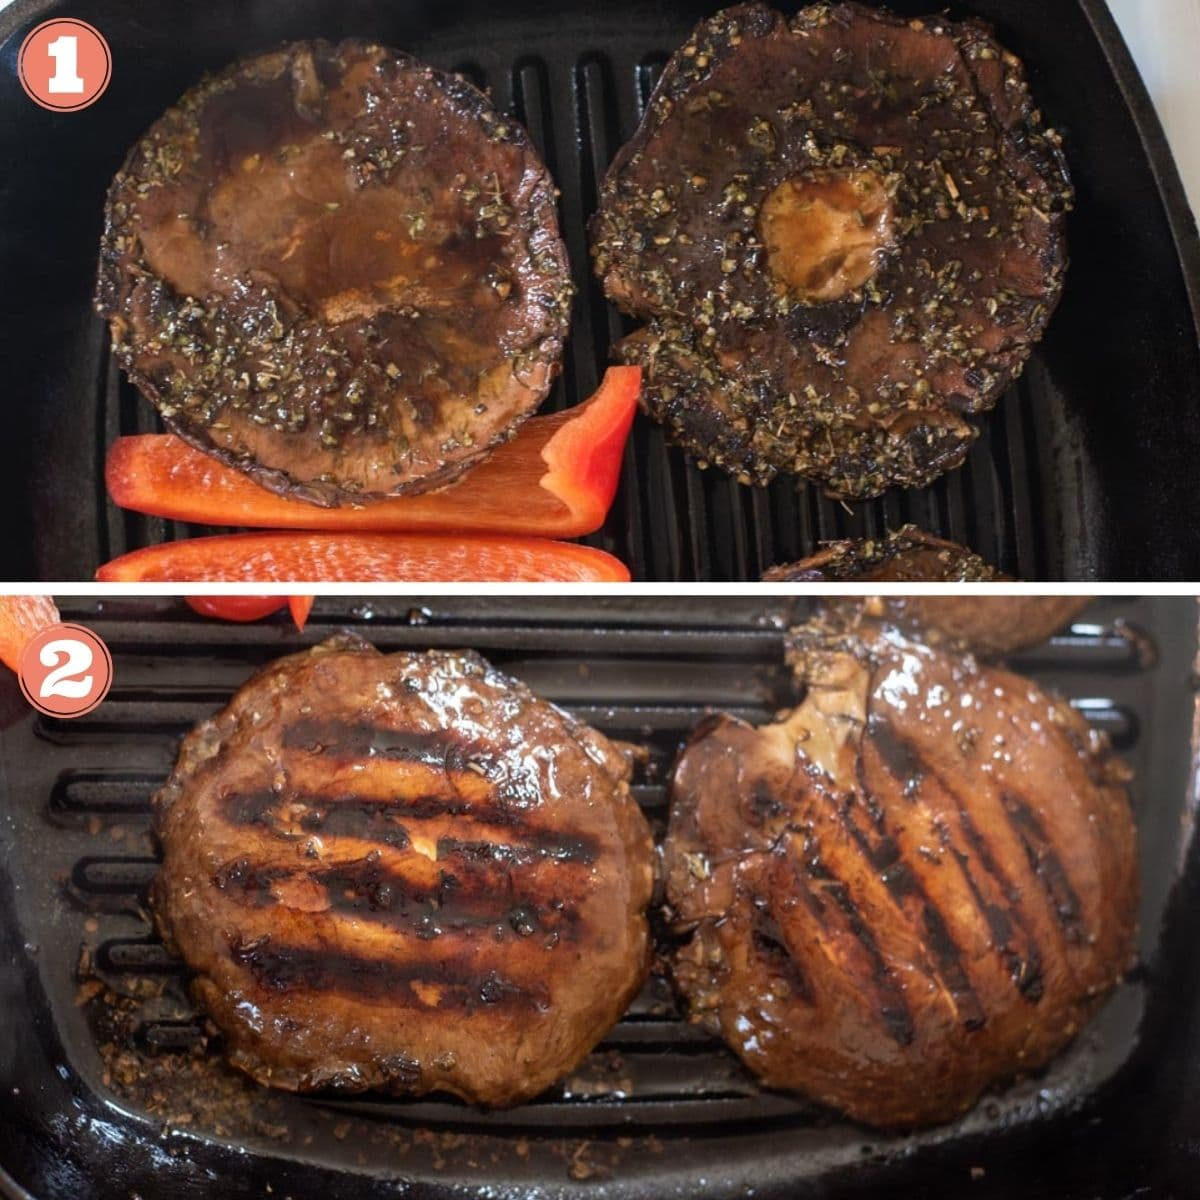 Steps 1 and 2 to make mushrooms on a grill pan